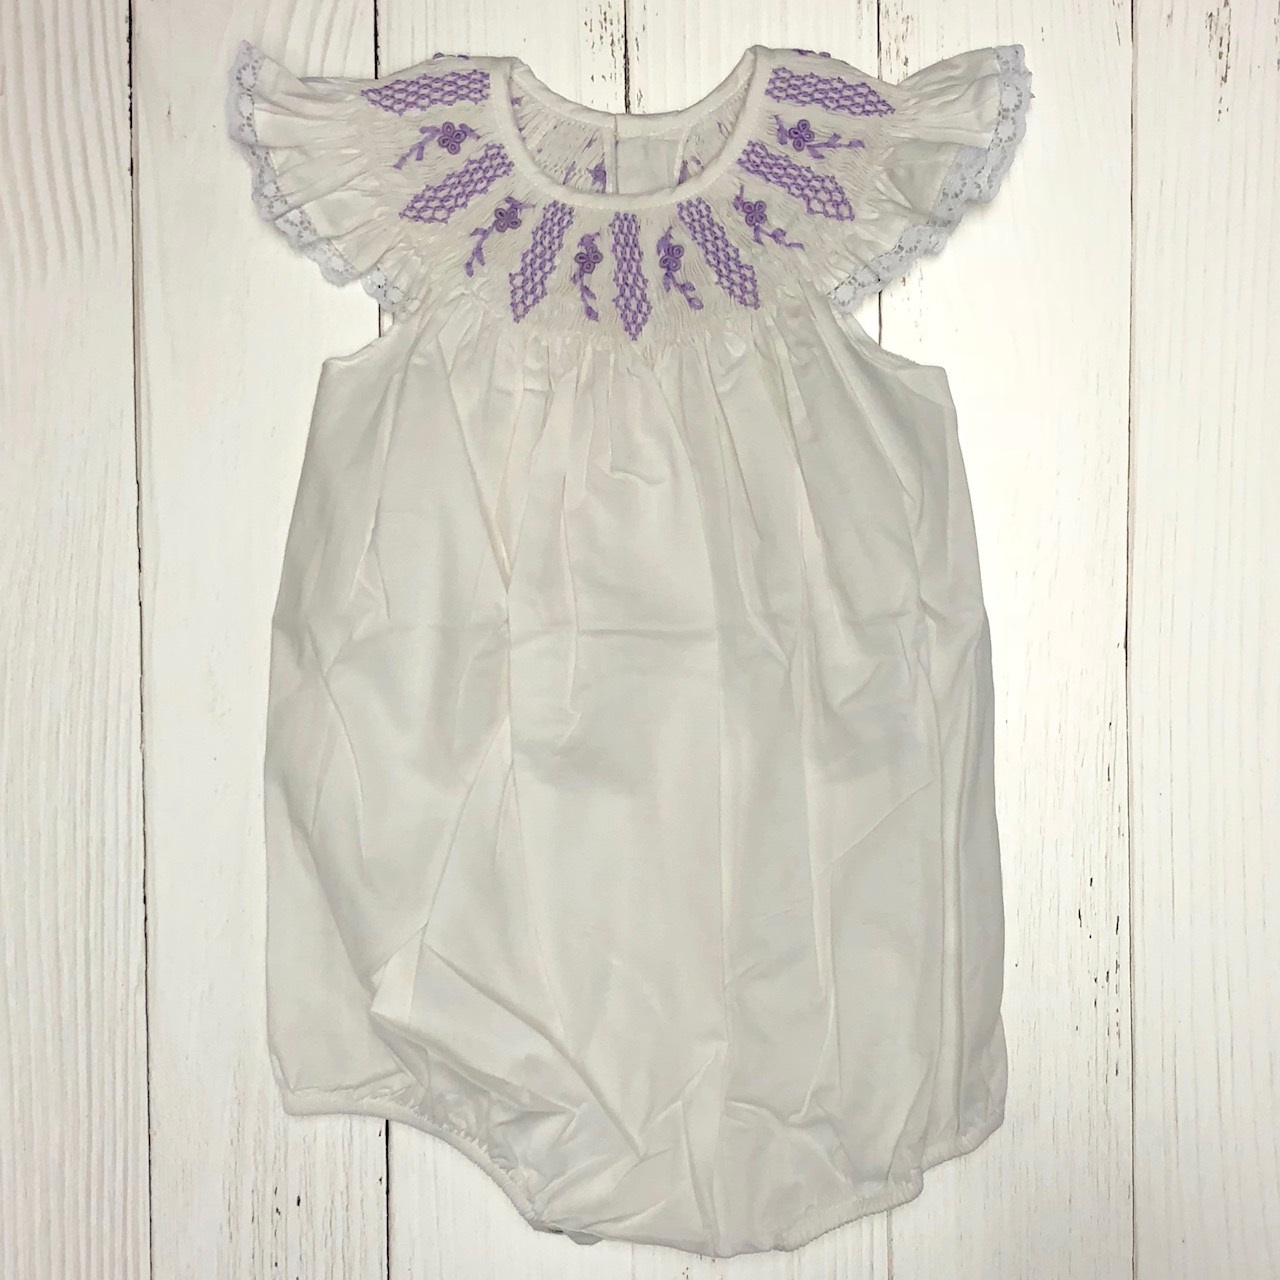 WHITE SMOCKED ANGEL SLEEVE BUBBLE